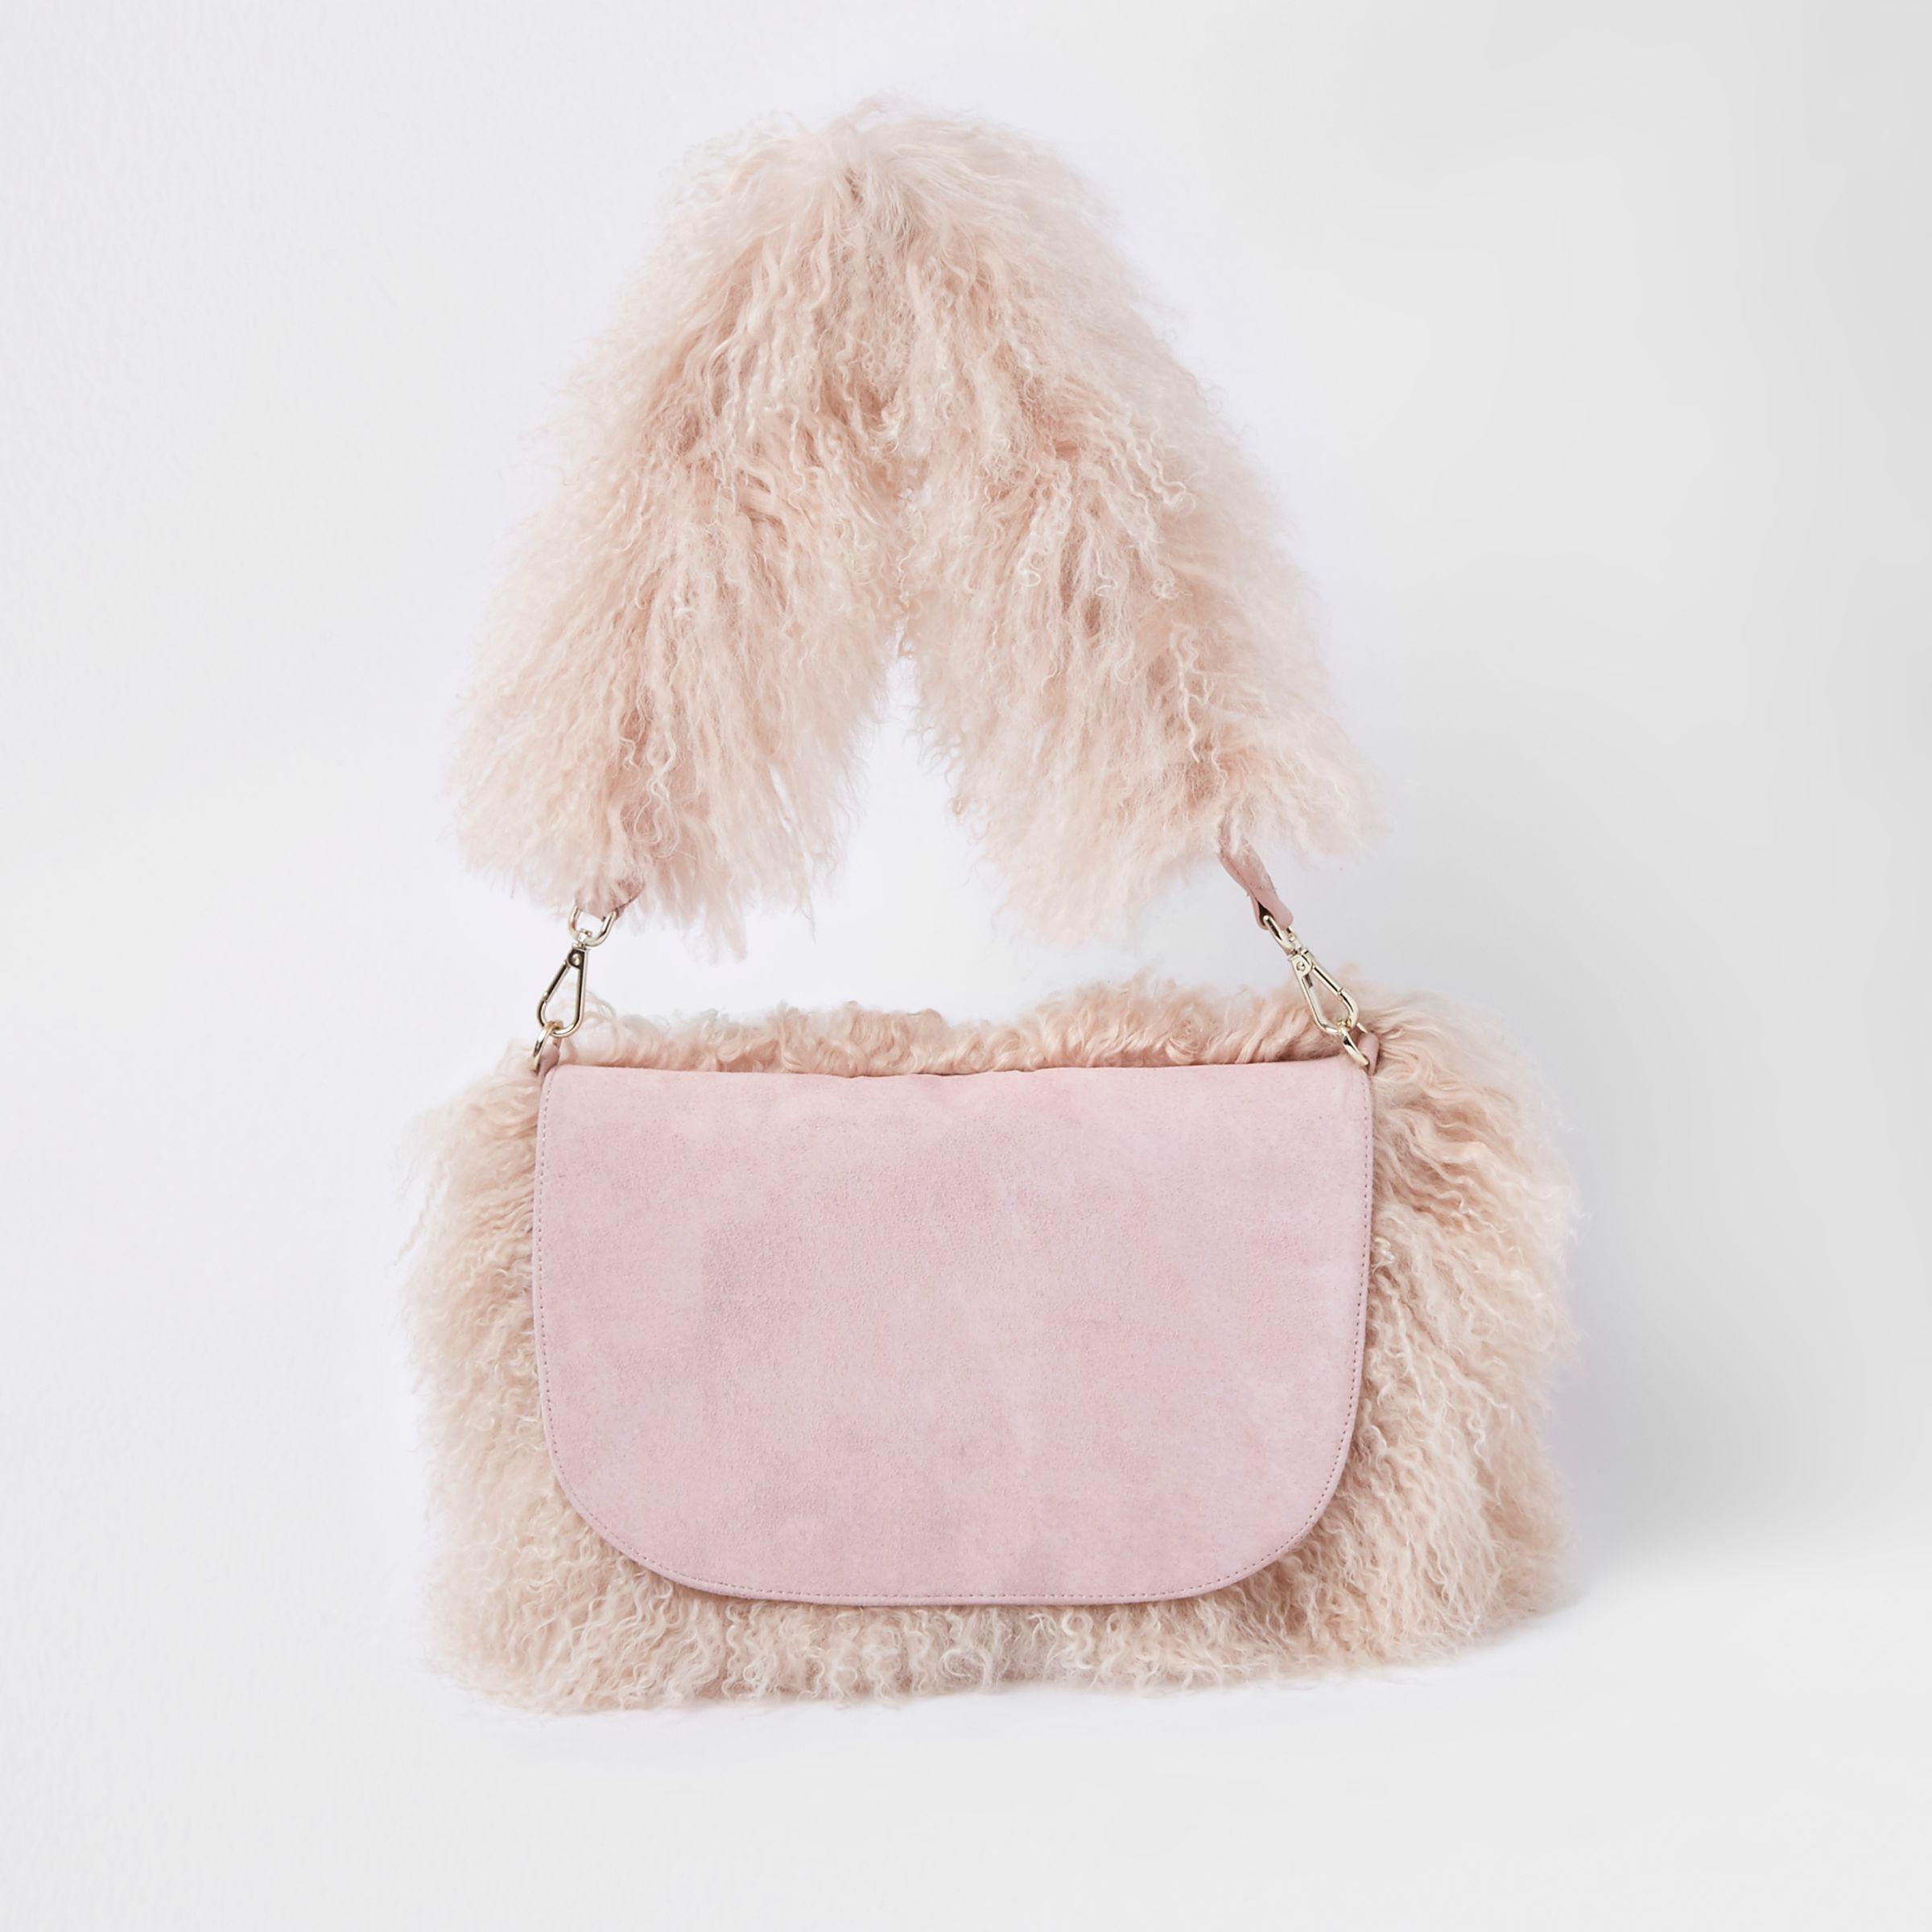 8d0c78e88ac6 Lyst - River Island Light Pink Faux Mongolian Shoulder Bag in Pink